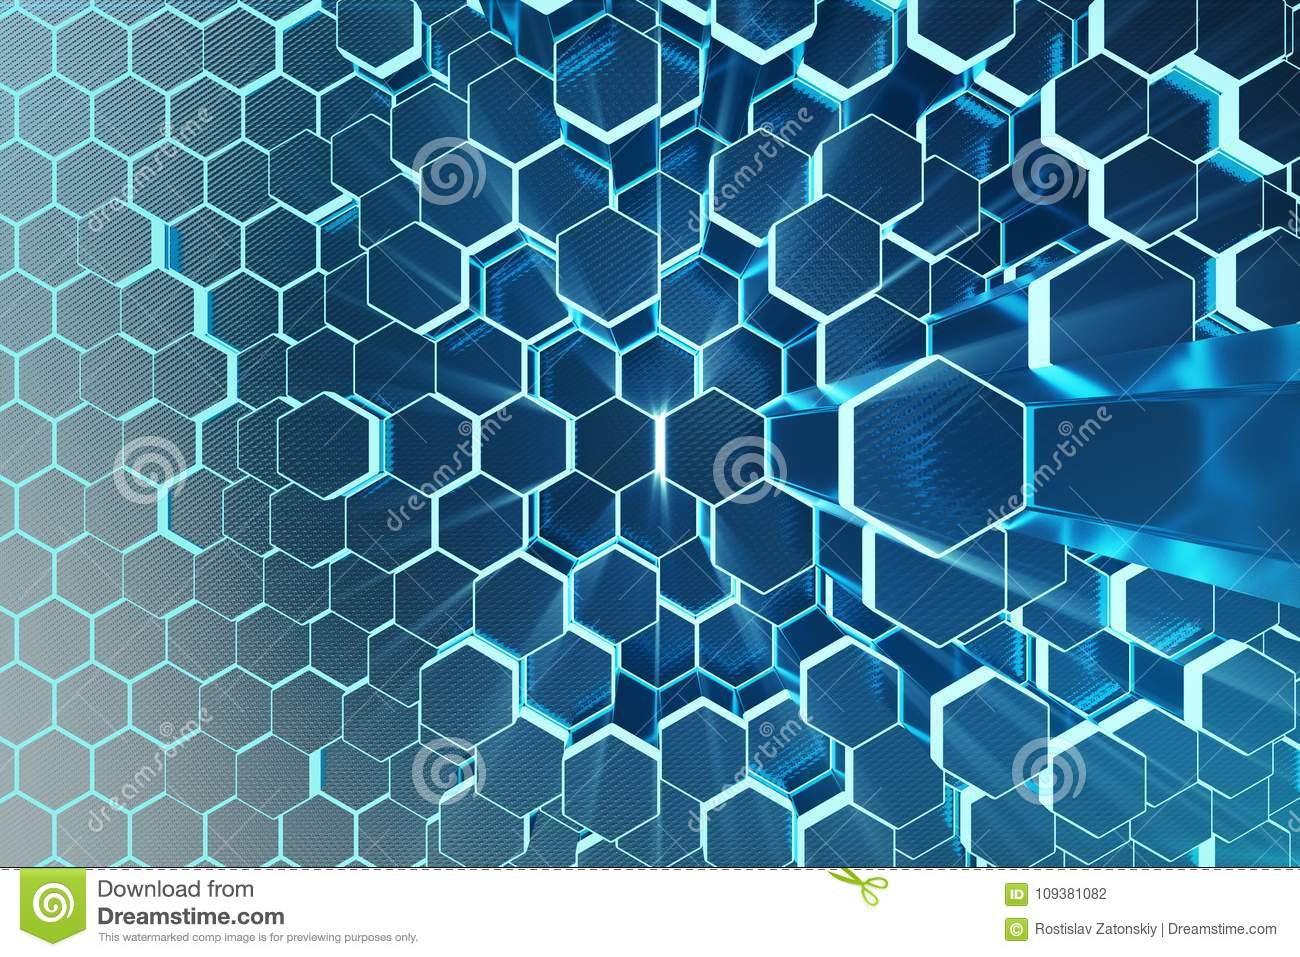 3D illustration Abstract blue of futuristic surface hexagon pattern with light rays. Blue tint hexagonal background.